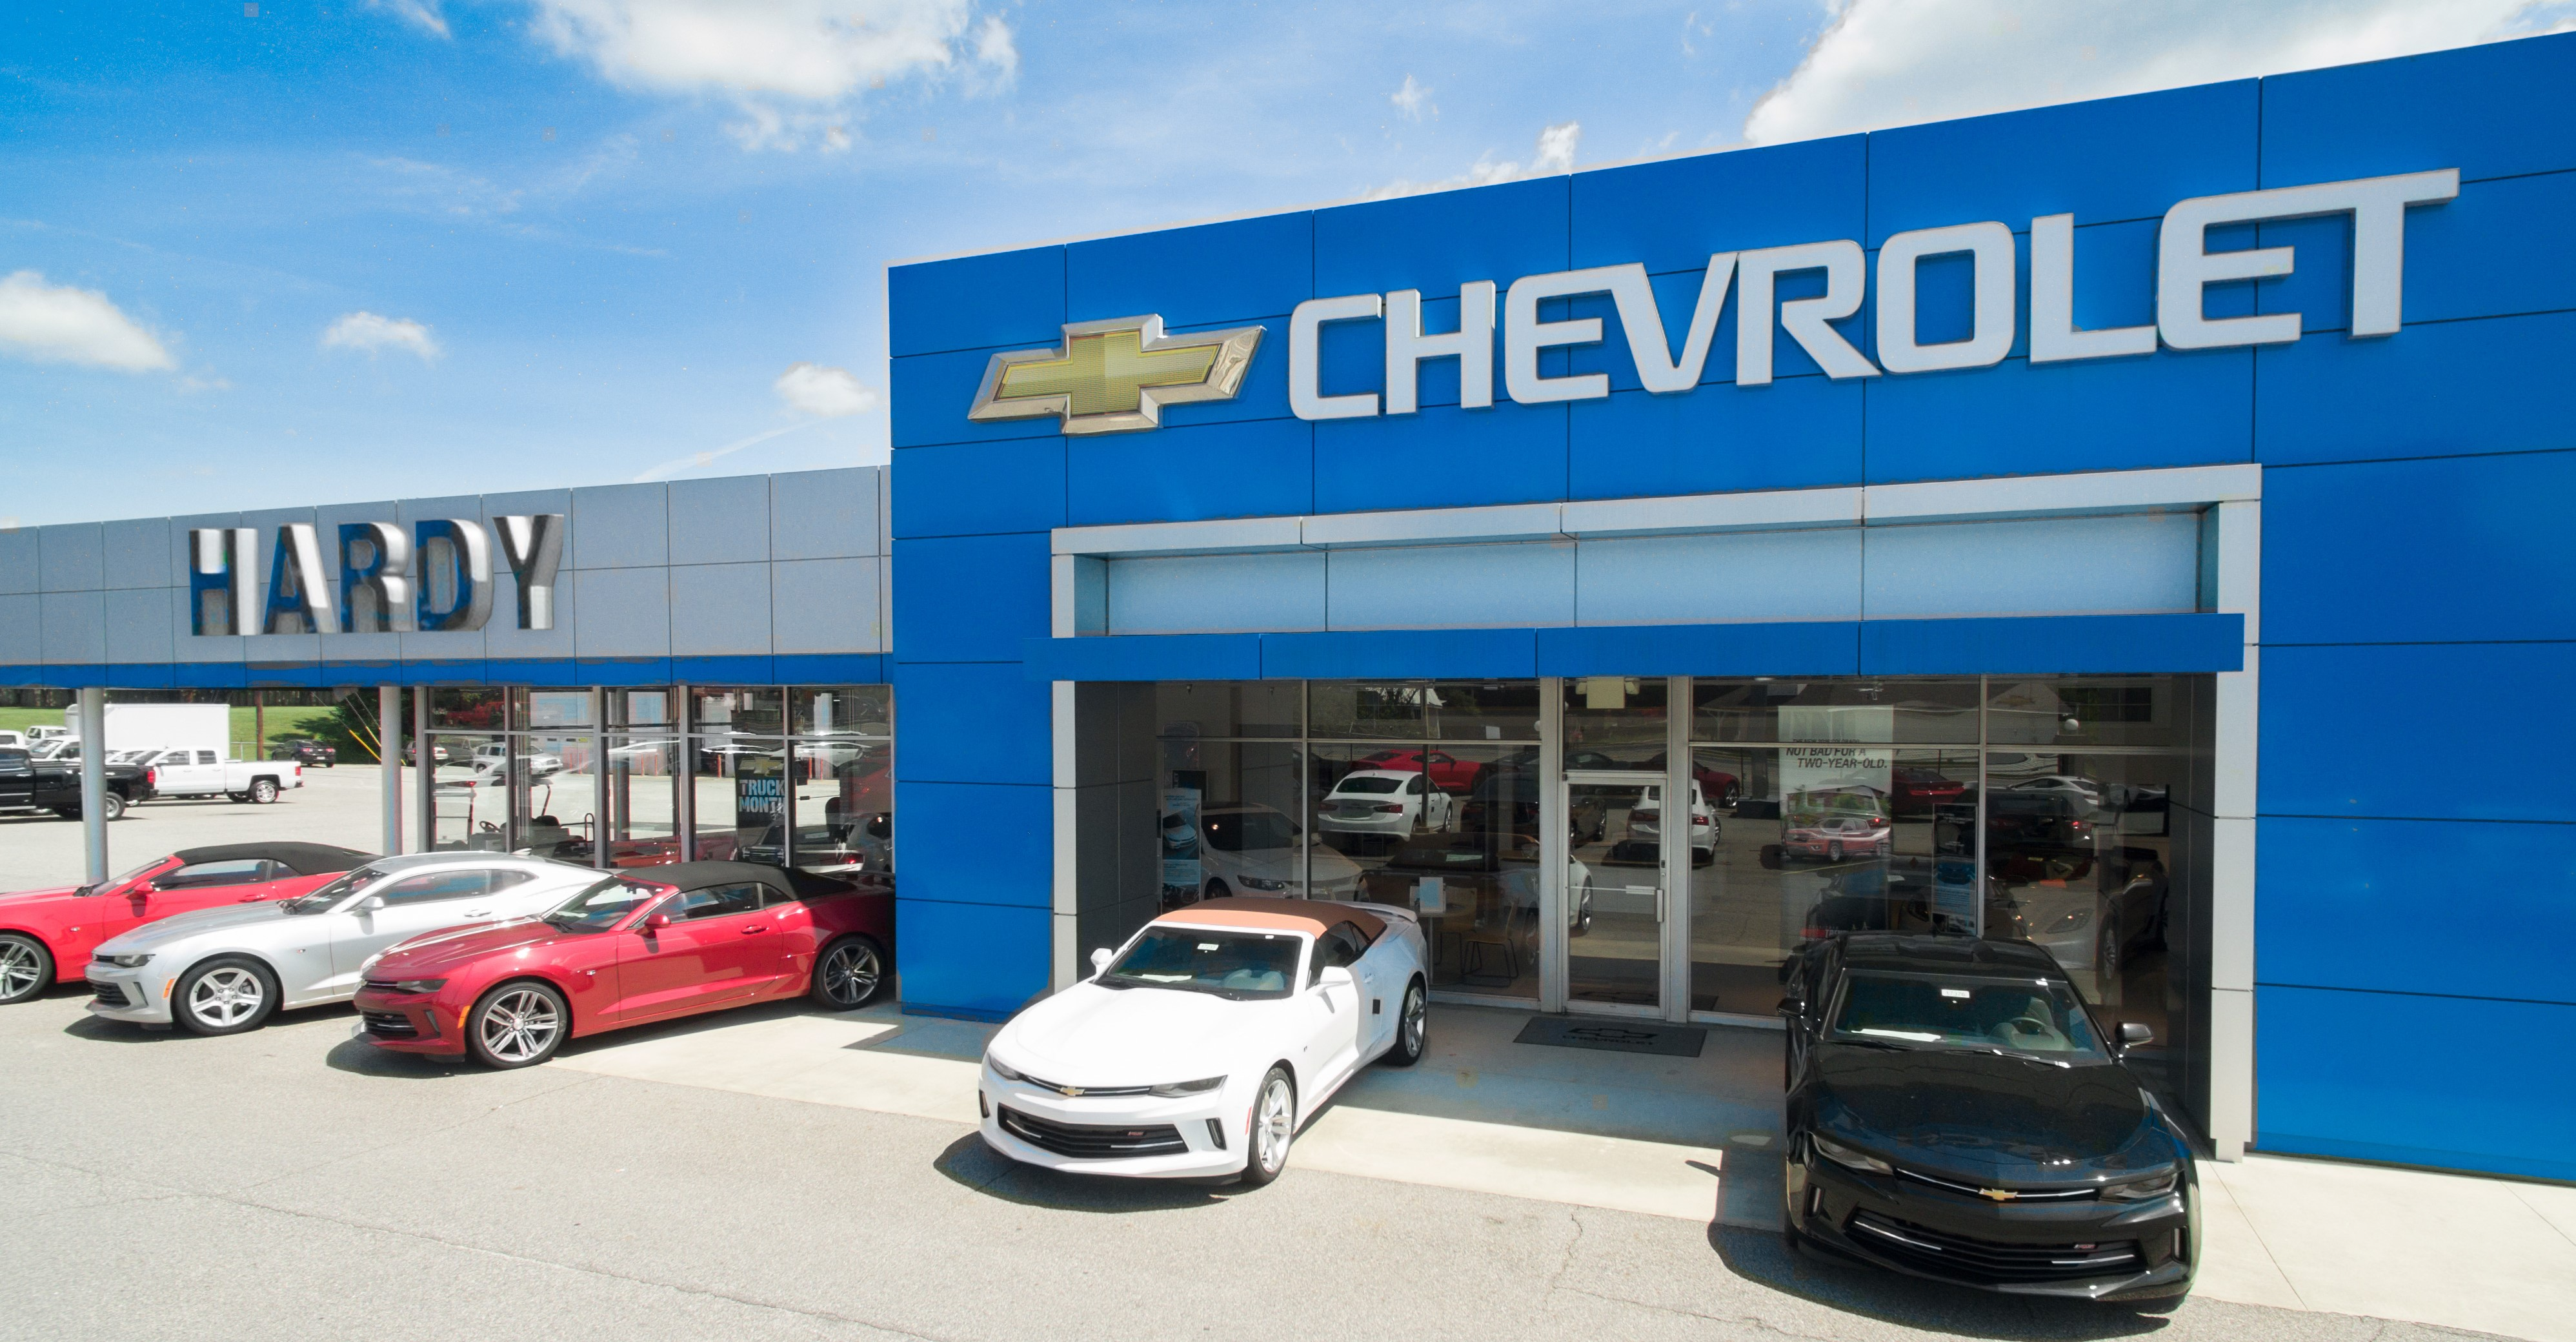 hardy chevrolet gainesville